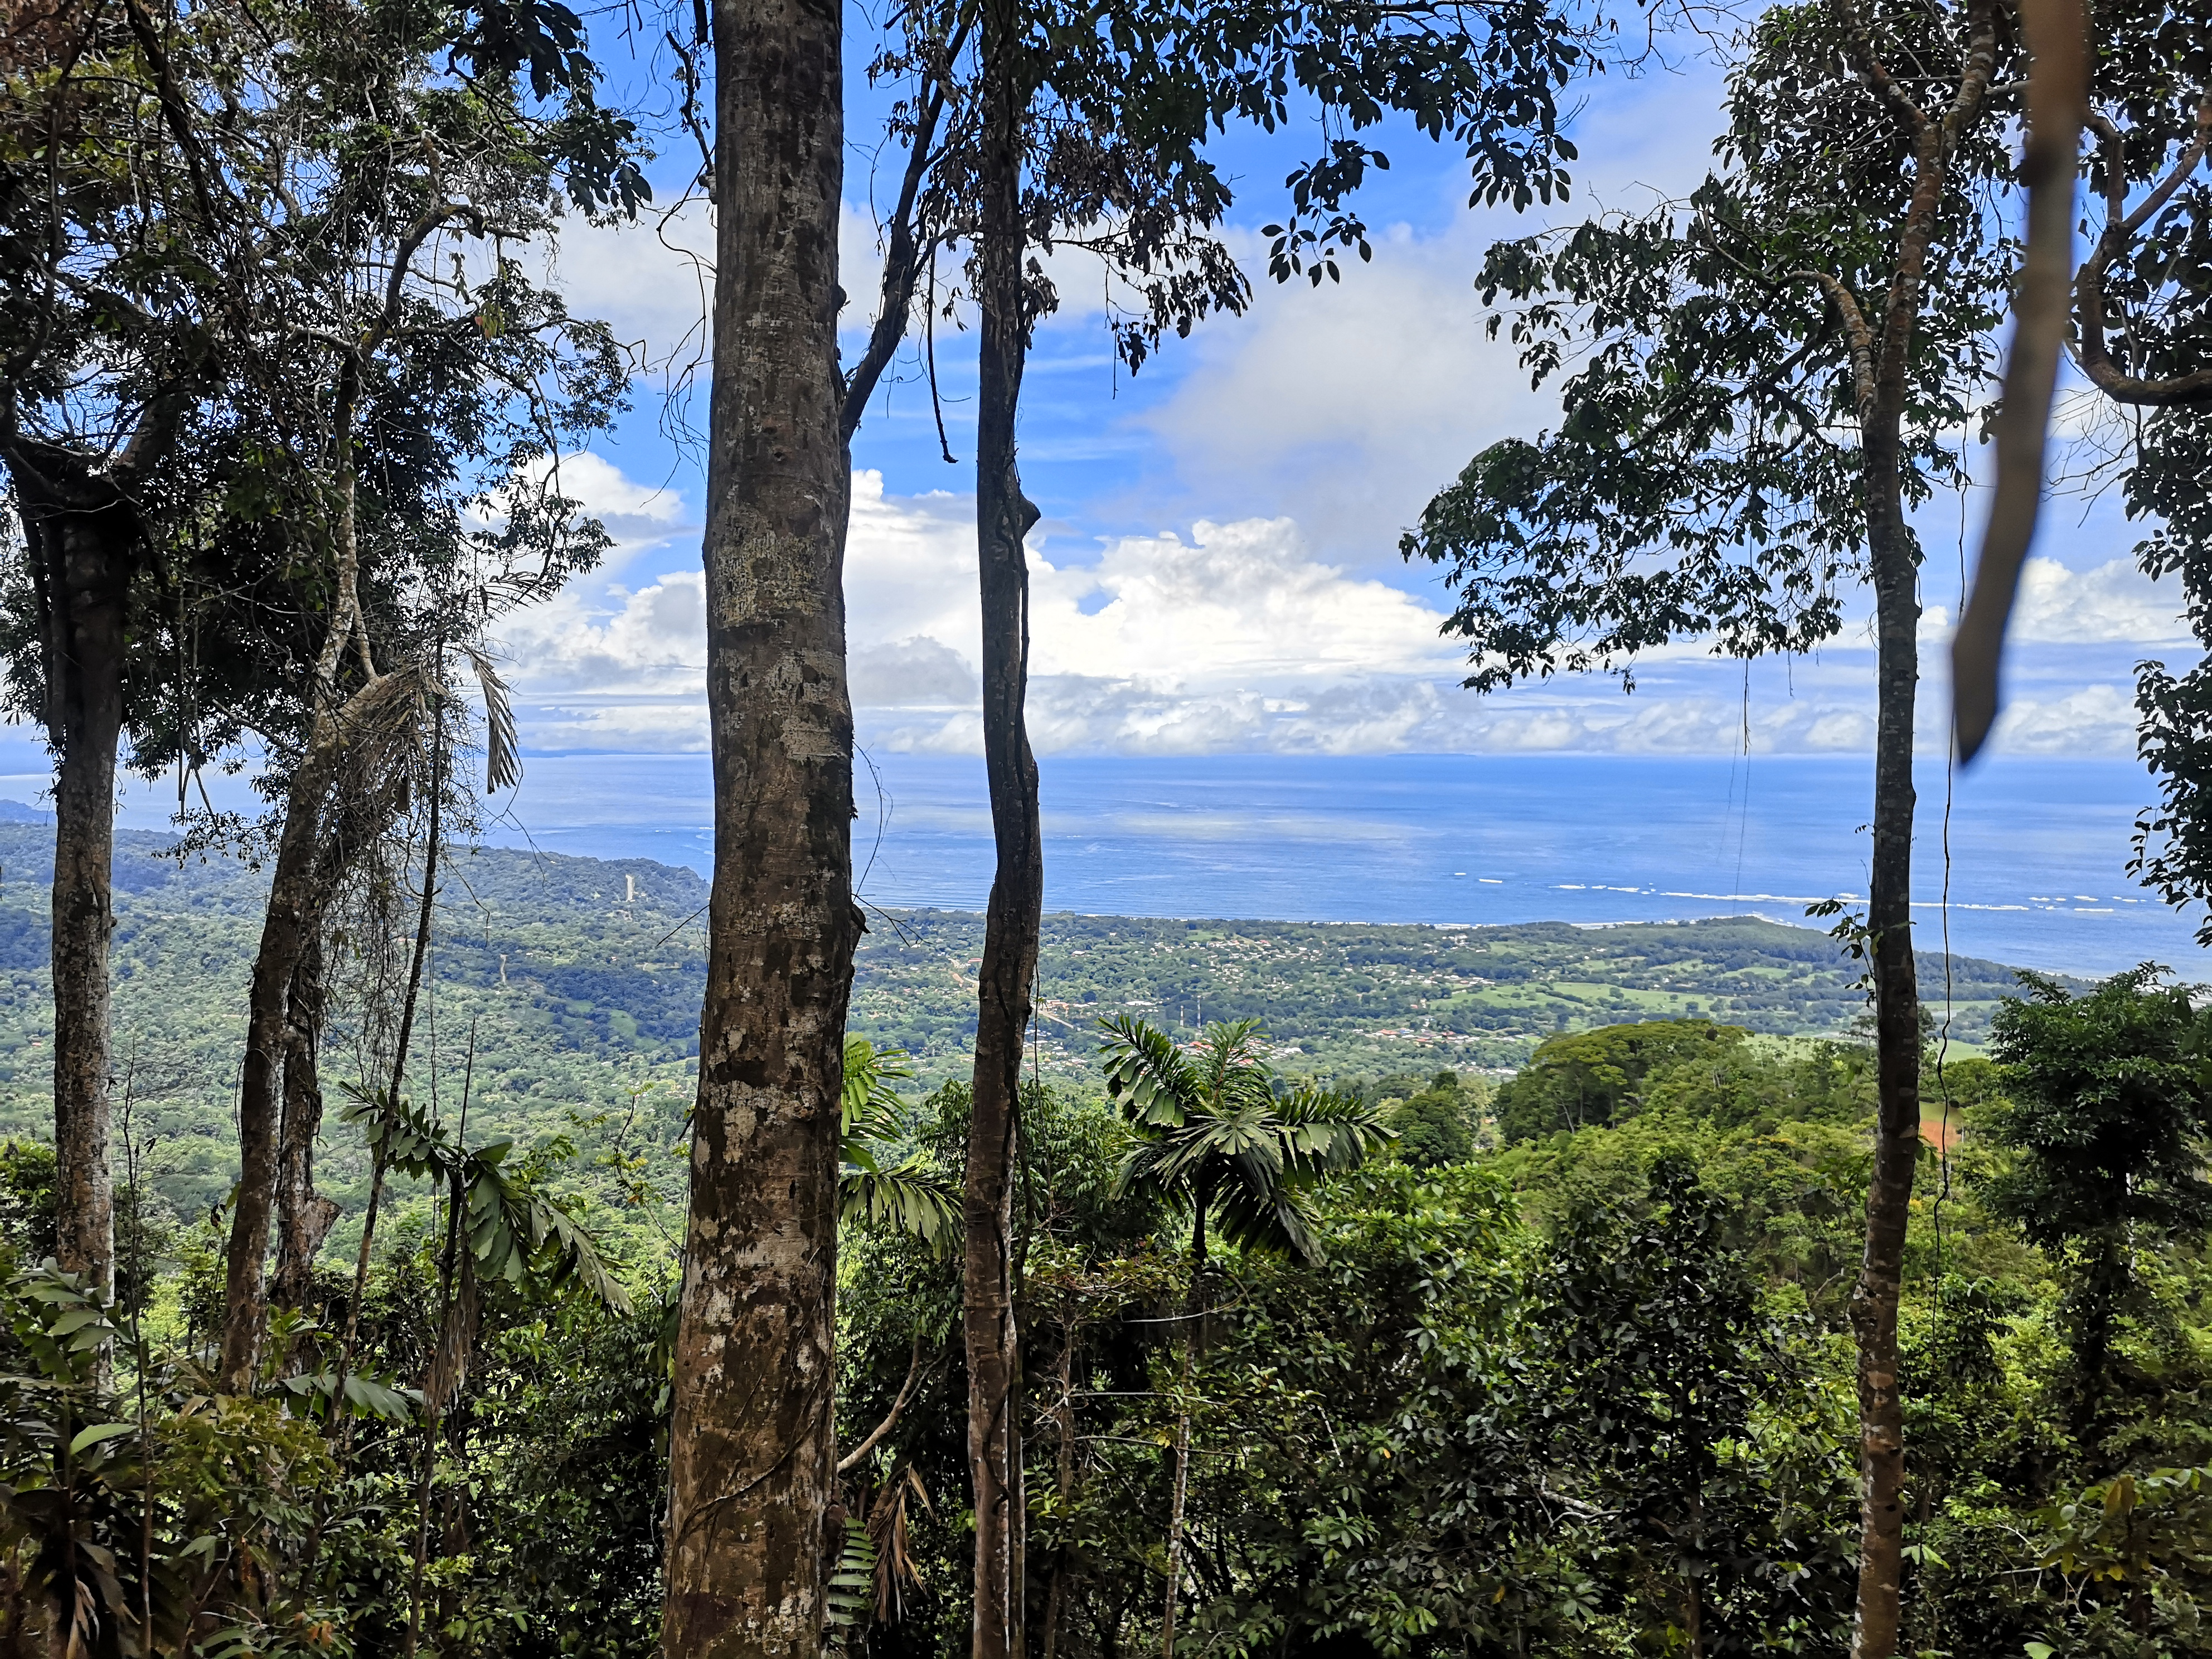 Lot with wonderful view to the tail of the whale, Uvita, Osa